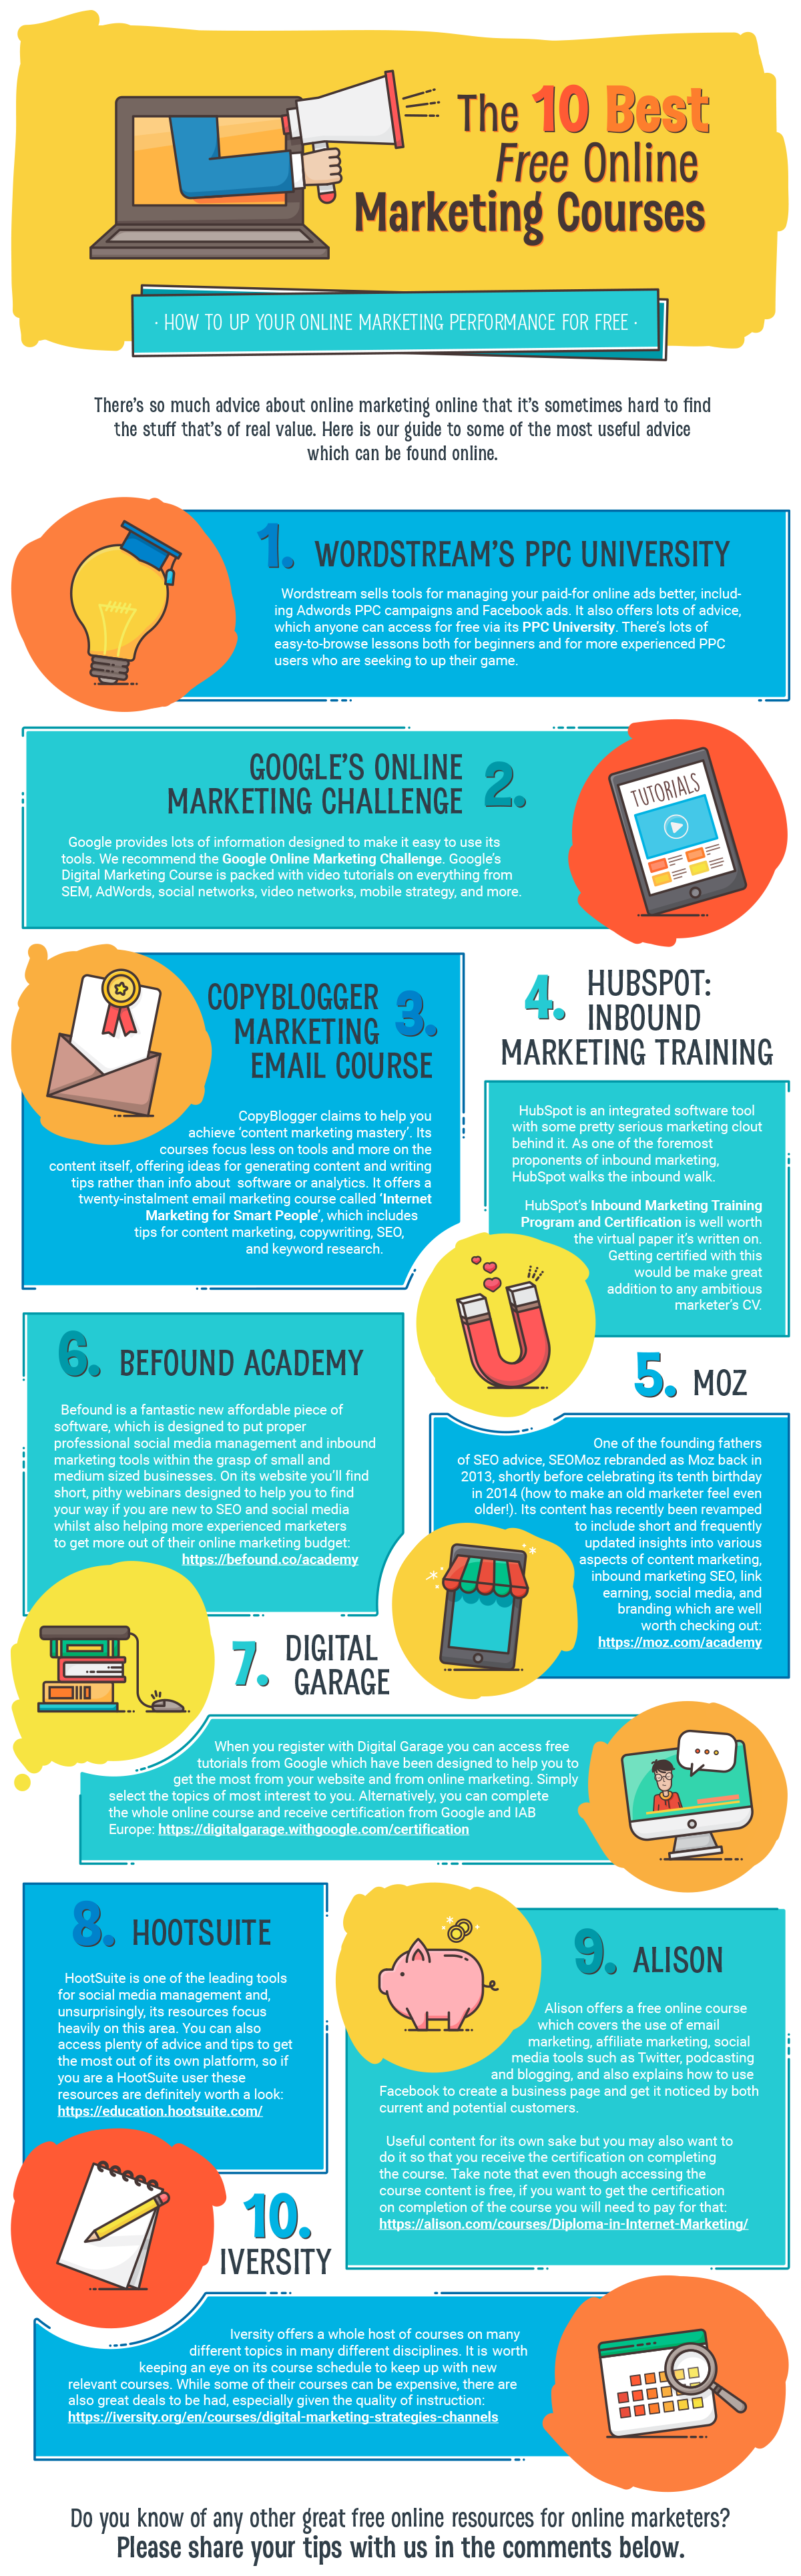 The 10 Best Free Online Marketing Courses